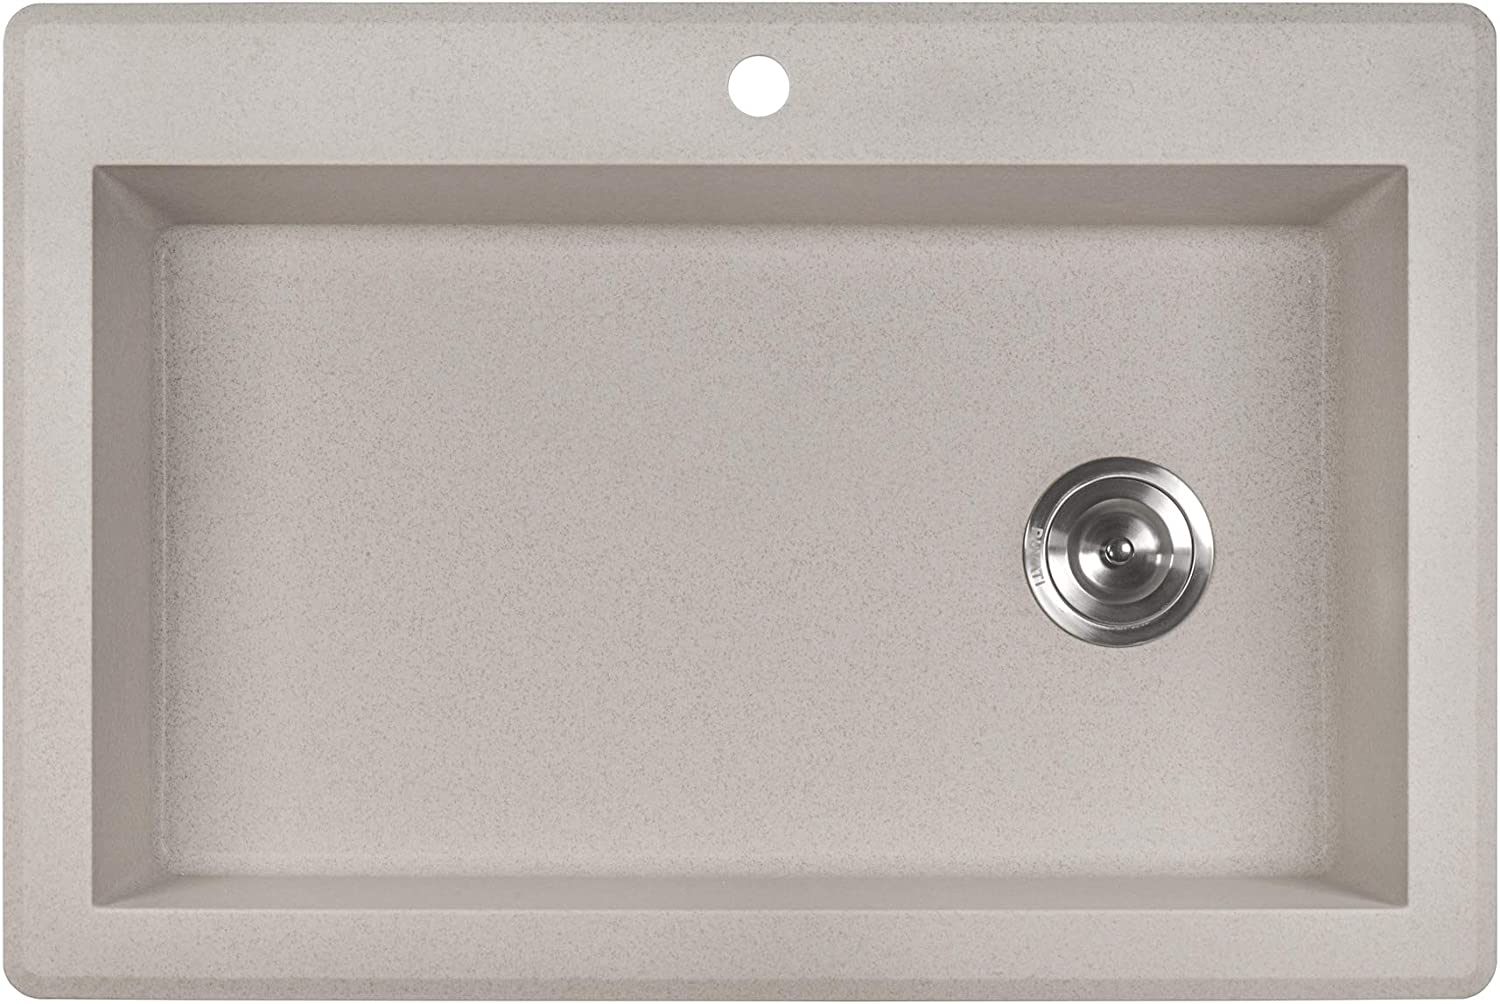 Ruvati 33 X 22 Inch Drop In Topmount Granite Composite Single Bowl Kitchen Sink Caribbean Sand Rvg1033cs